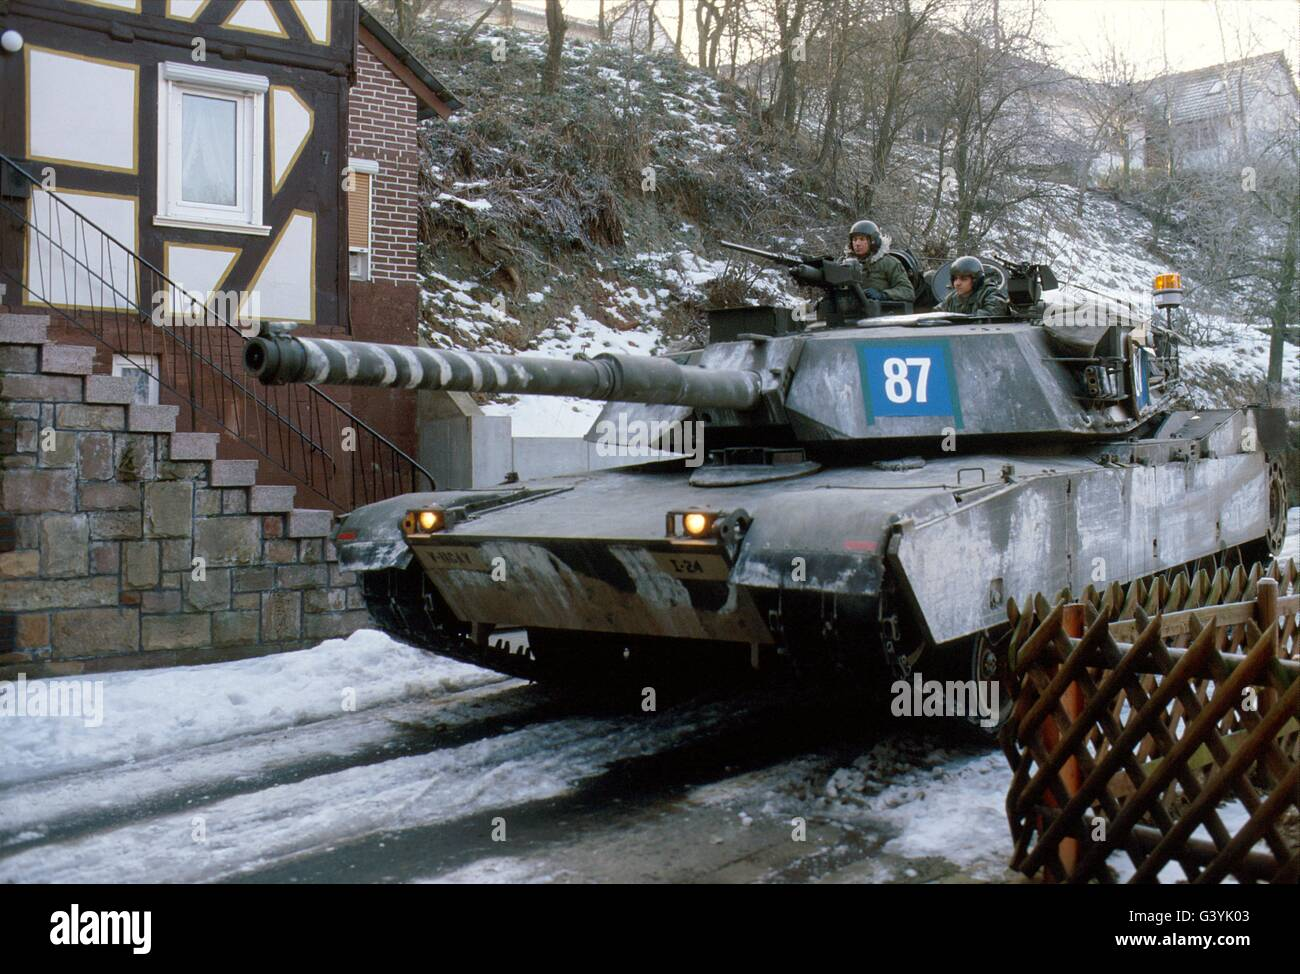 http://c7.alamy.com/comp/G3YK03/us-army-tanks-m-1-abram-during-nato-exercises-in-germany-G3YK03.jpg